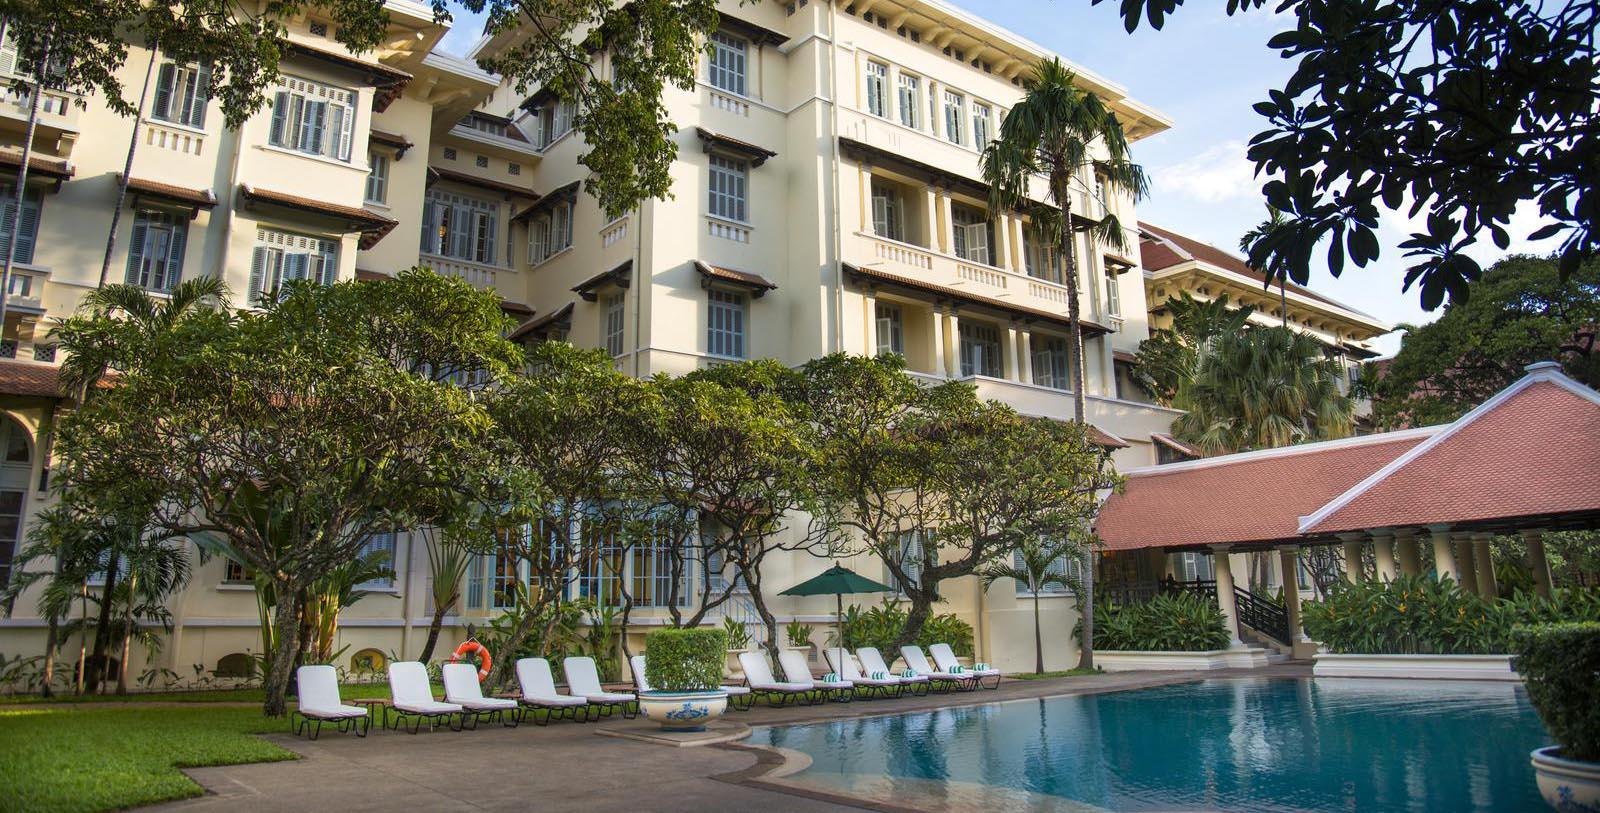 Image of Pool Raffles Hotel Le Royal, 1929, Member of Historic Hotels Worldwide, in Phnom Penh, Cambodia, Overview